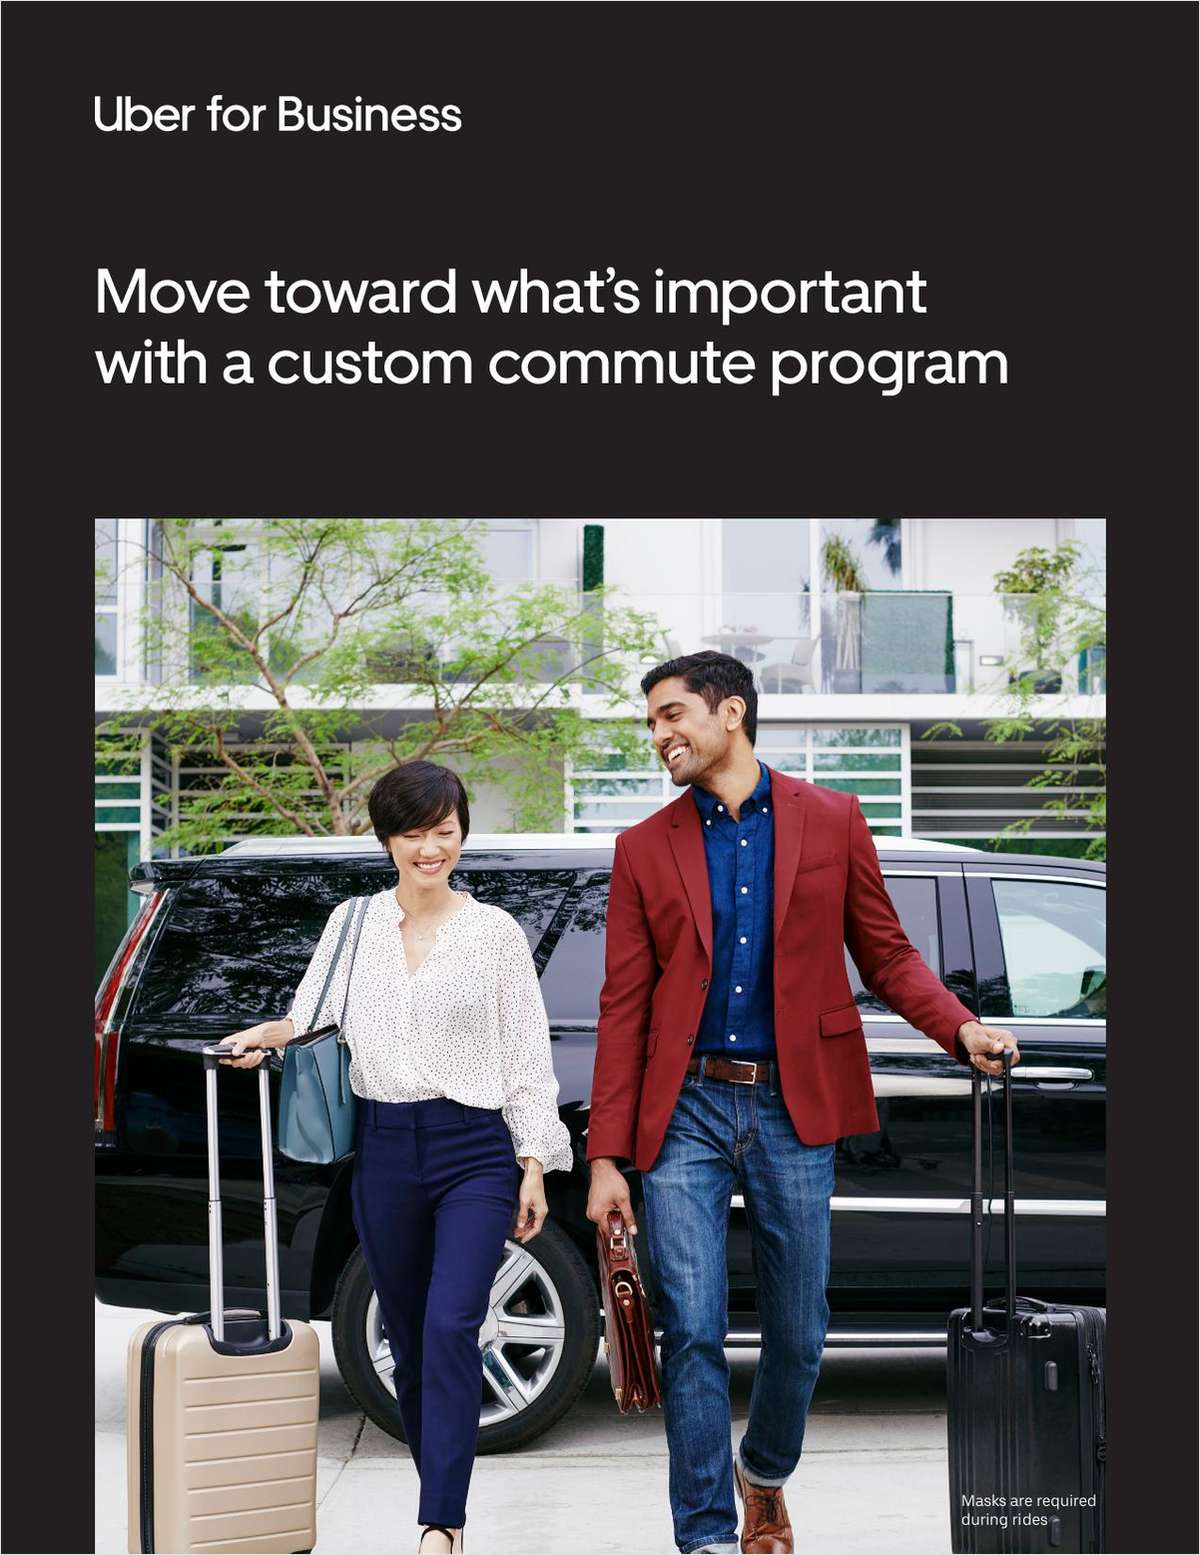 Move toward what's important with a custom commute program